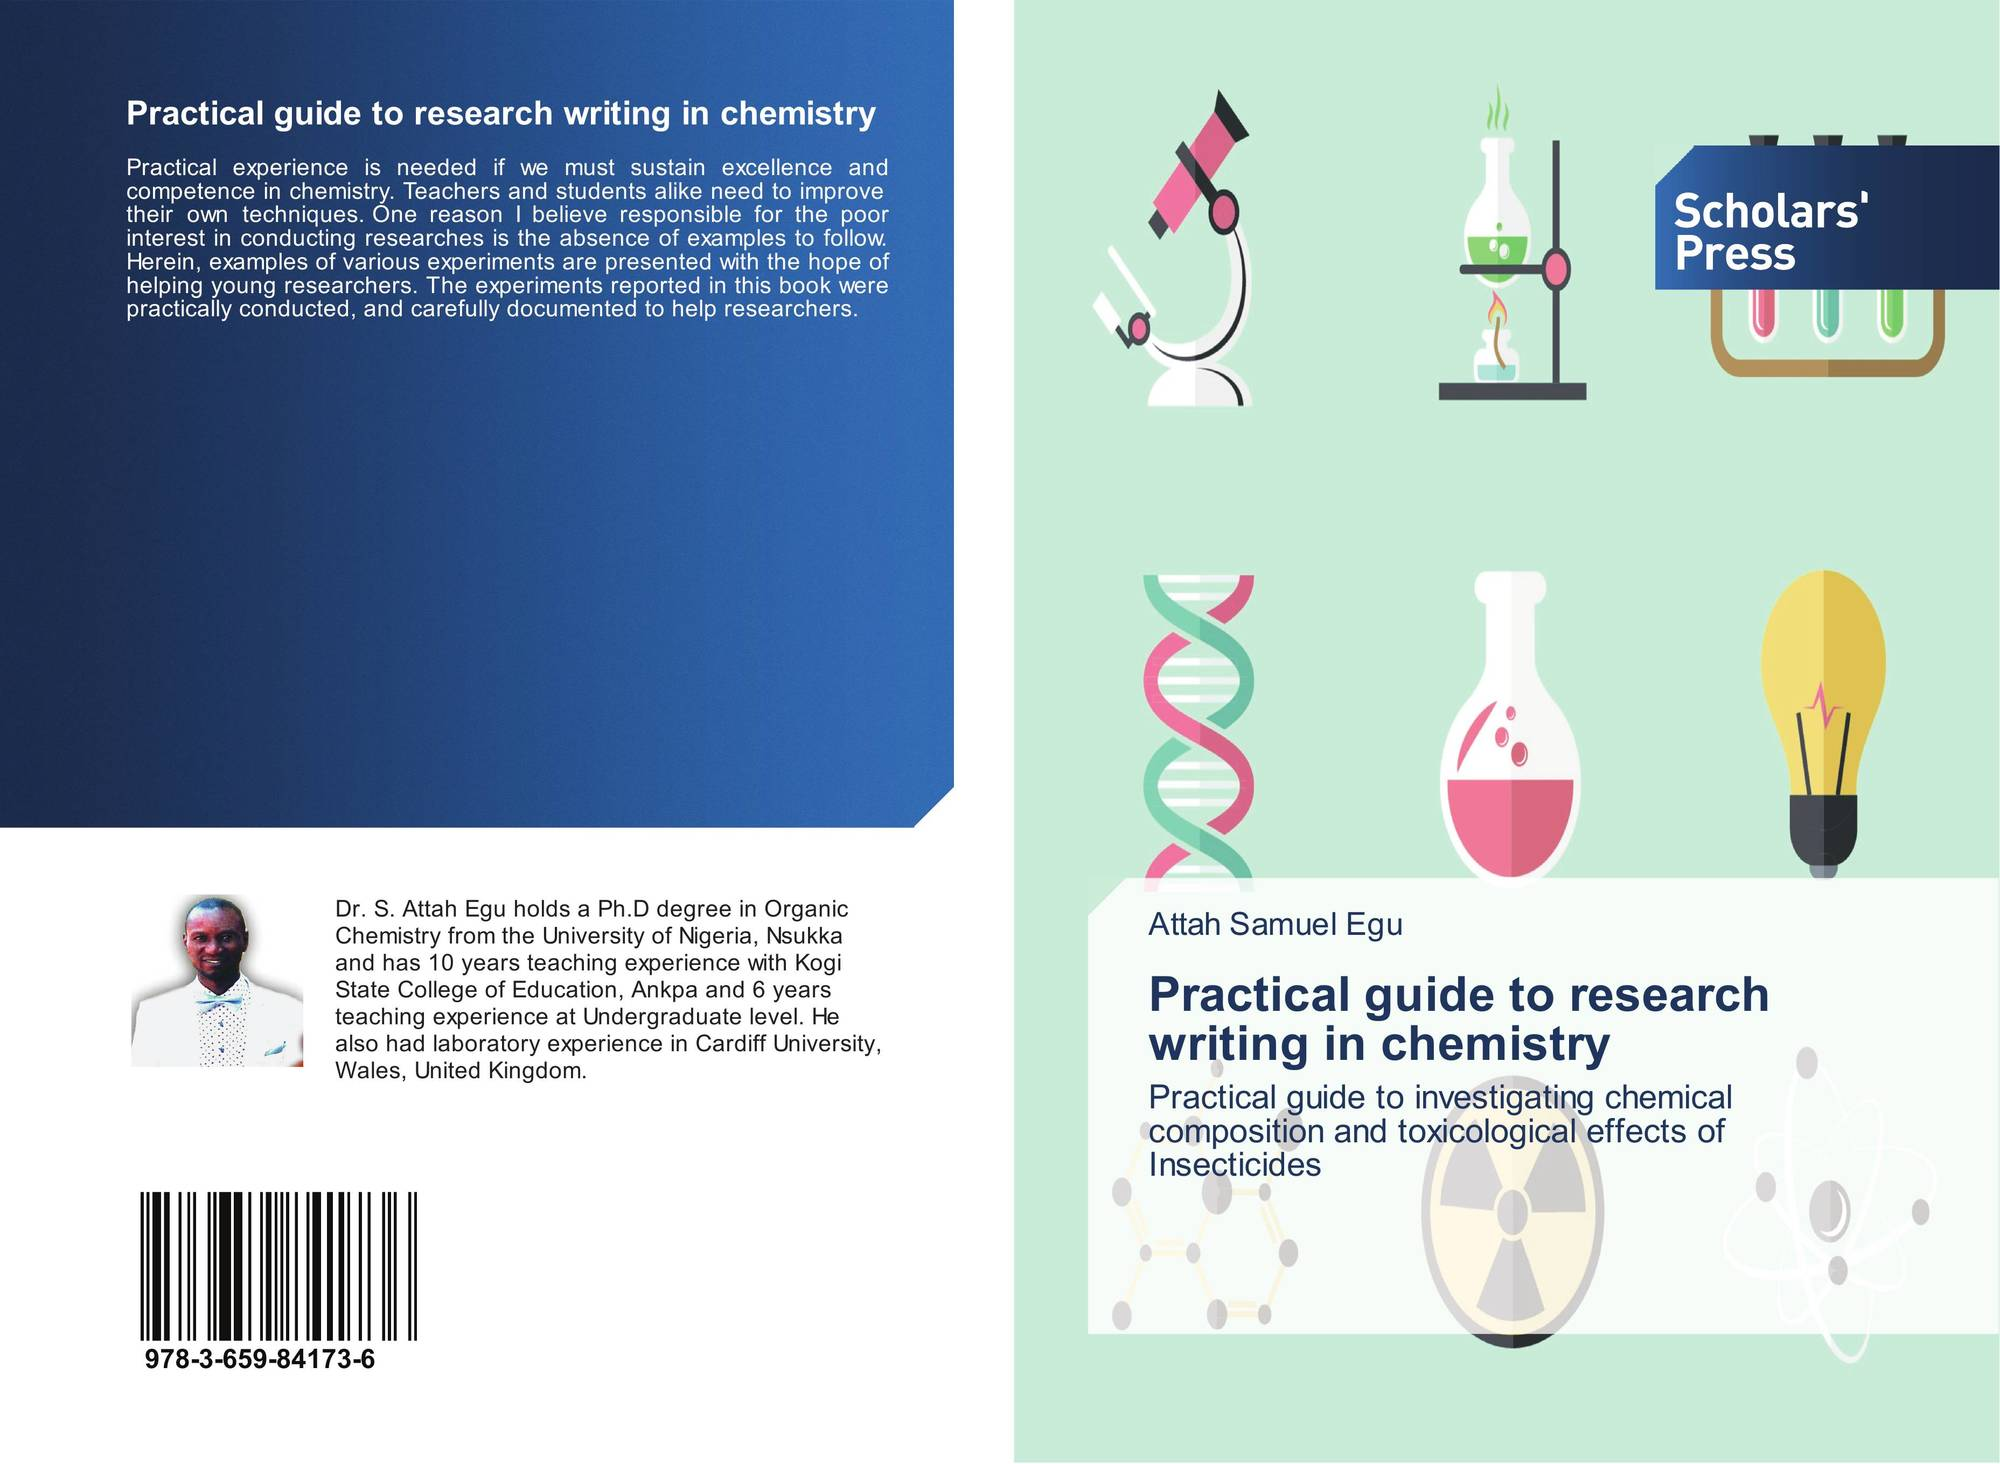 Practical guide to research writing in chemistry, 978-3-659